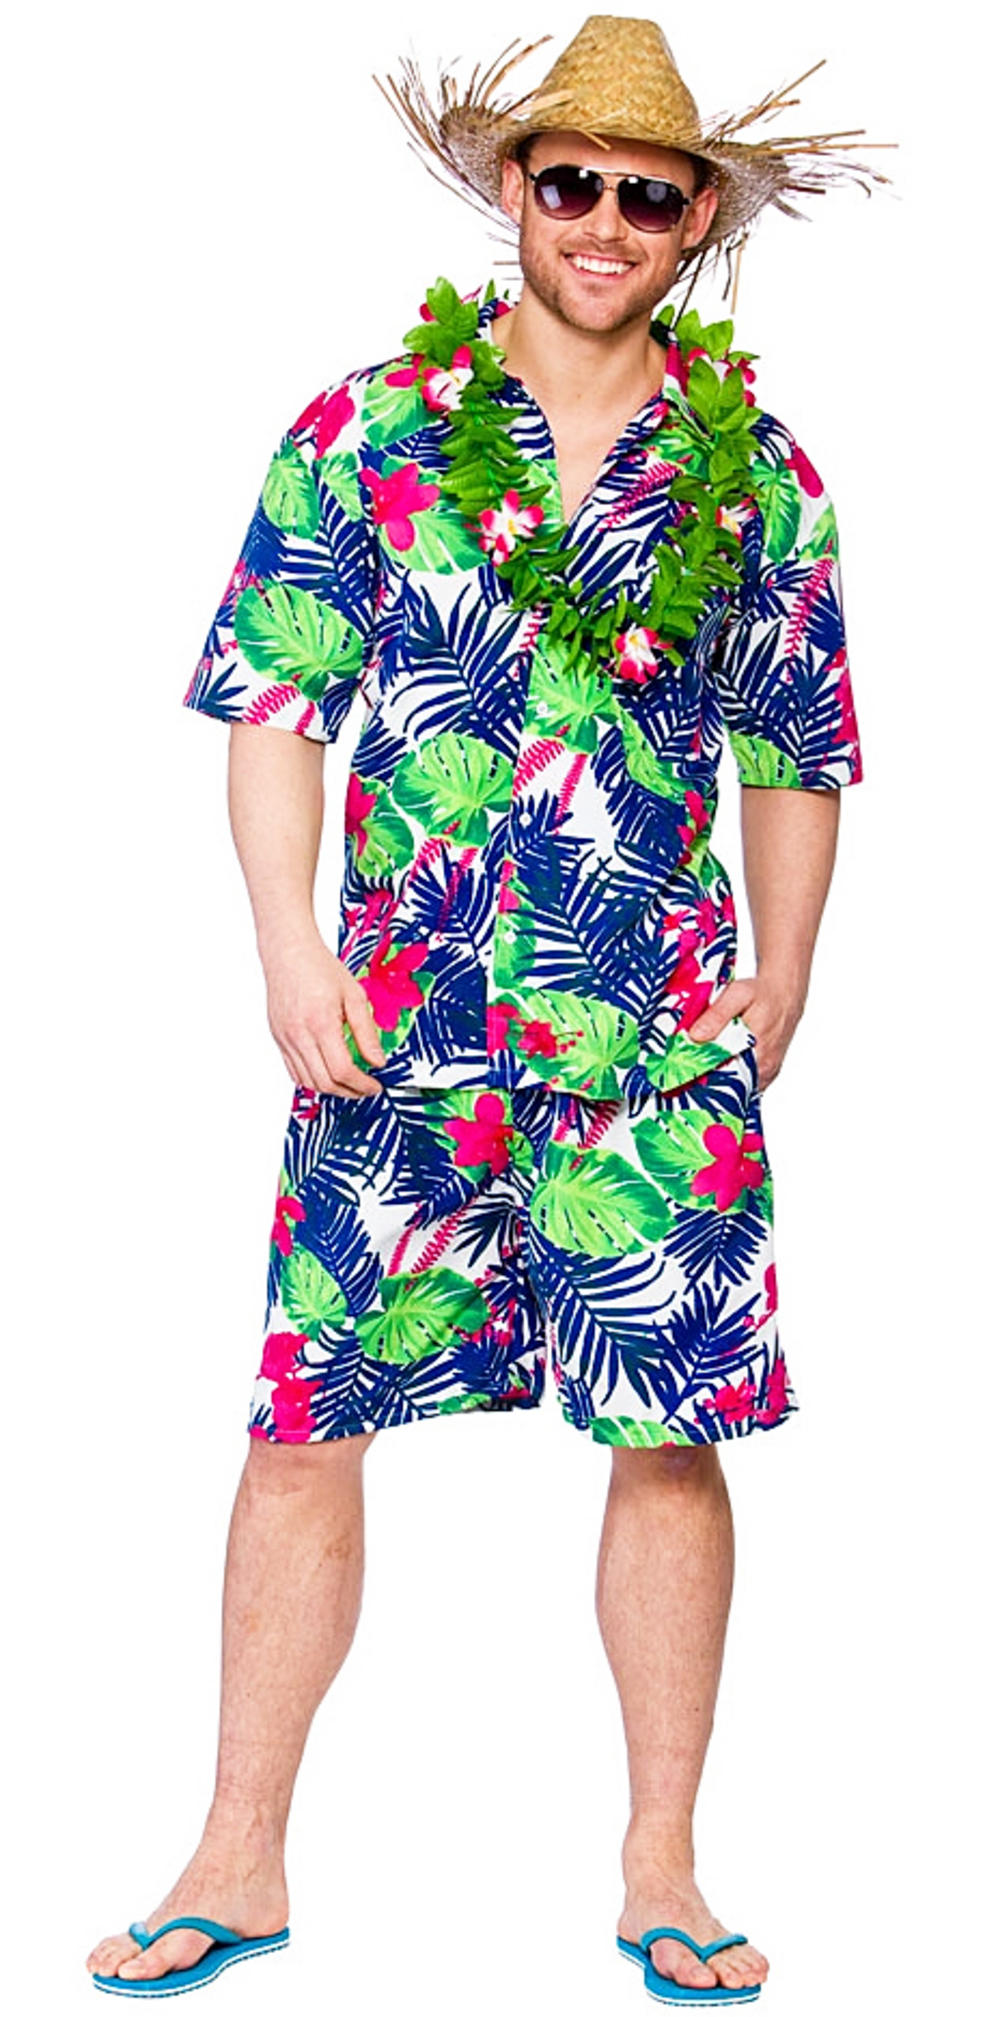 Hawaiian Funky Leaf Costume | Letter u0026quot;Hu0026quot; Costumes | Mega Fancy Dress